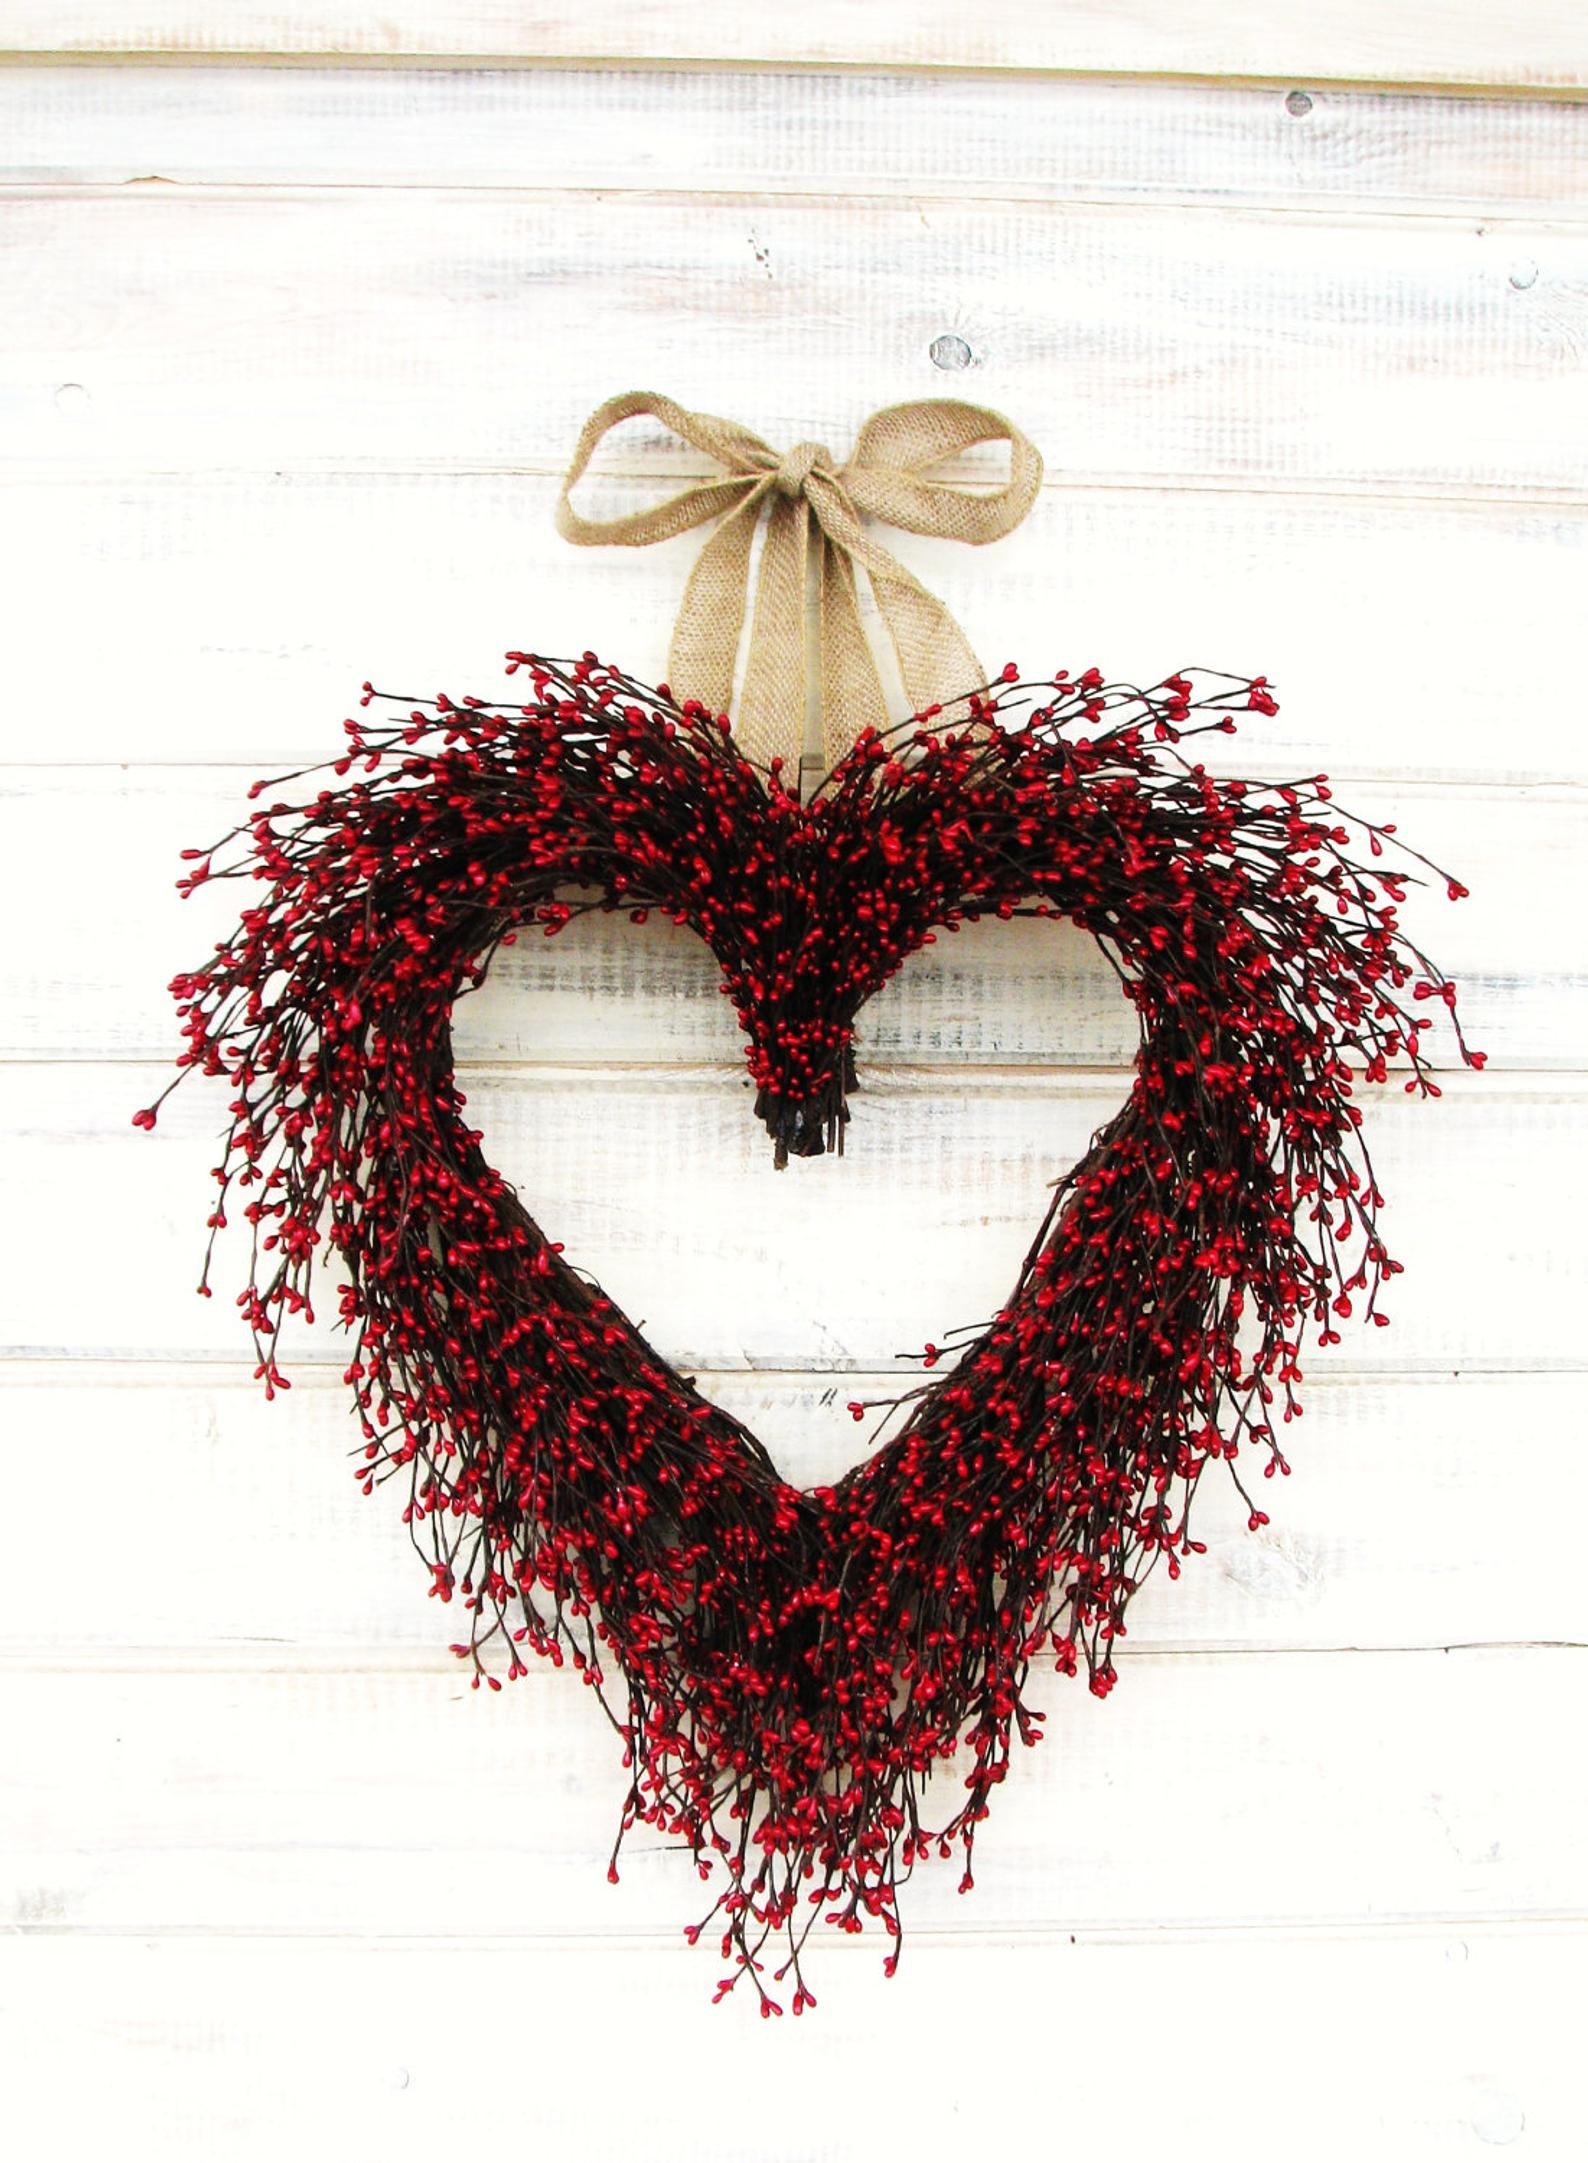 Red heart-shaped wreath with strawberries